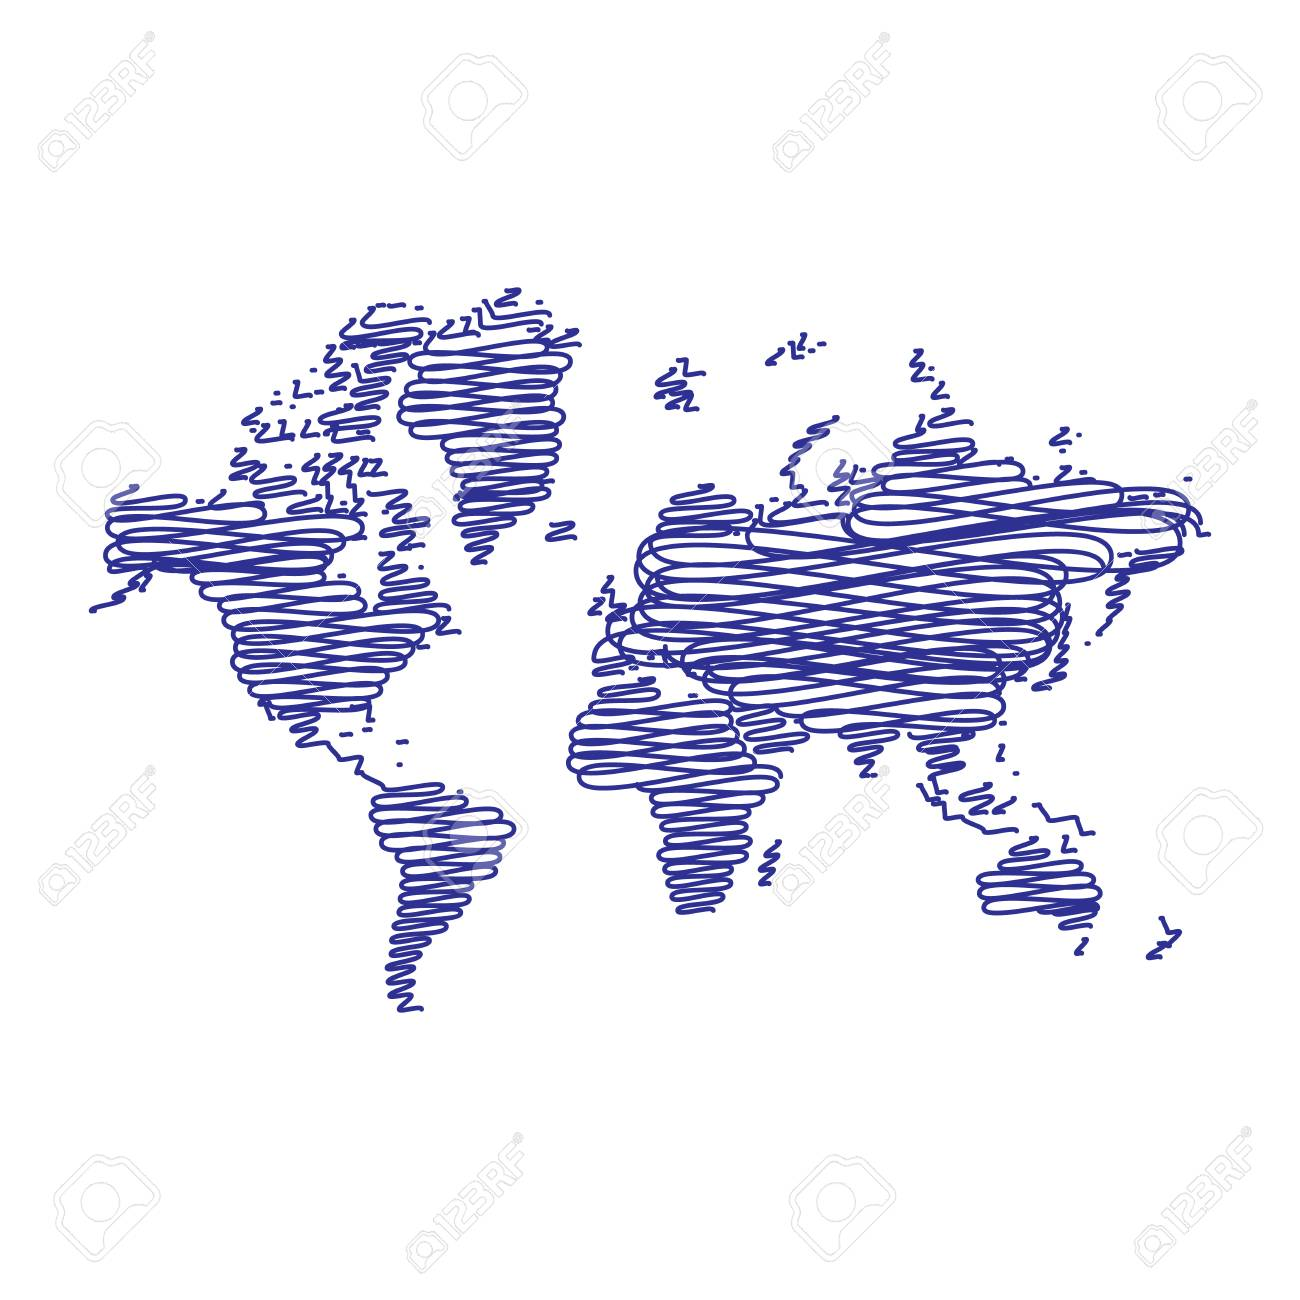 Pen art sketch drawing world map for web and mobile app pen art sketch drawing world map for web and mobile app illustration gumiabroncs Gallery